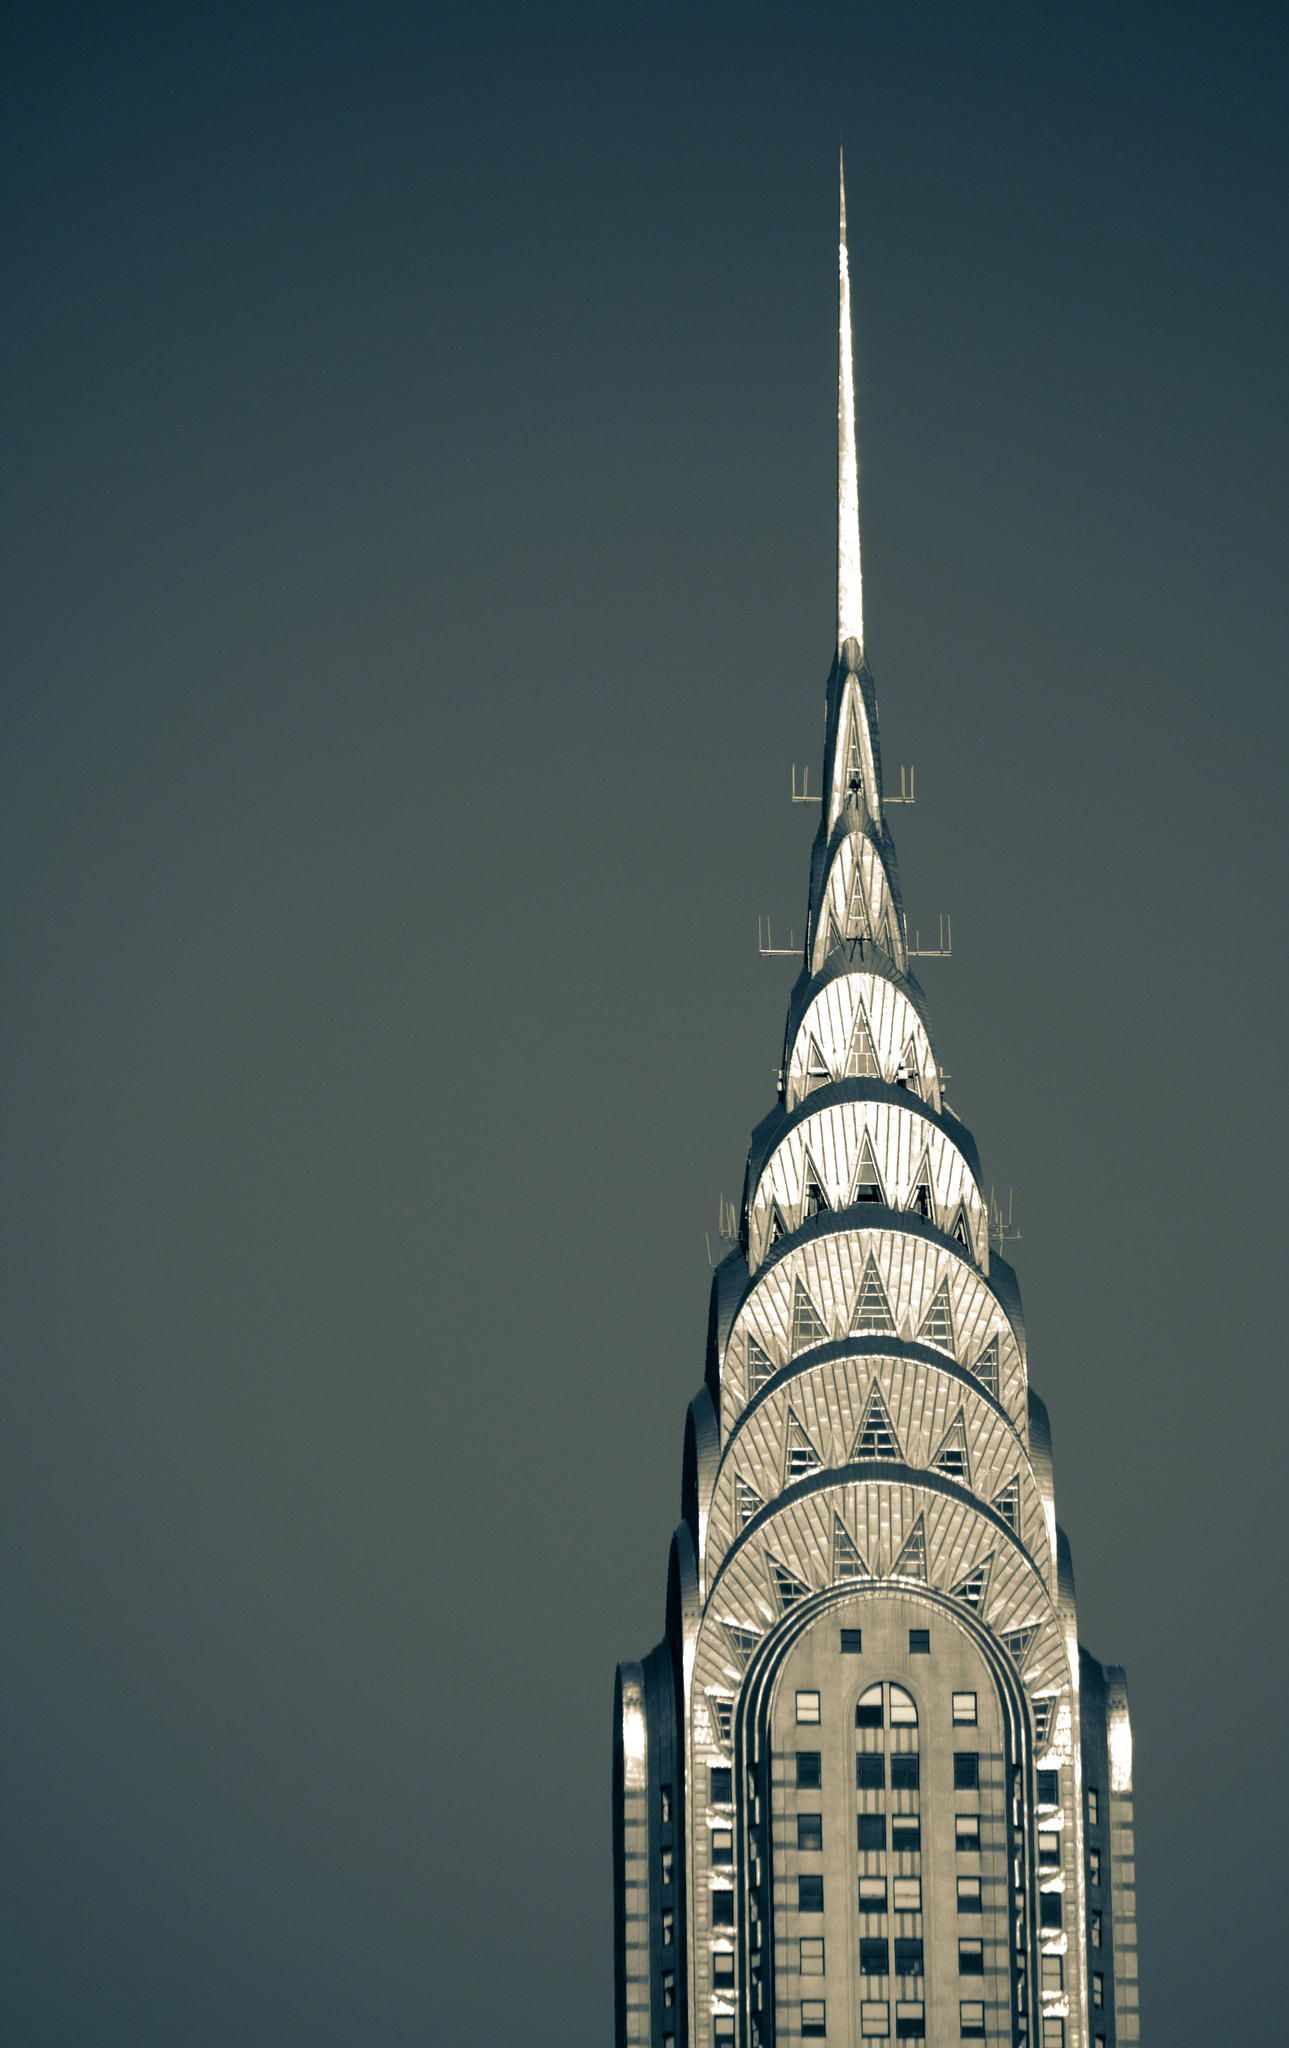 The Chrysler Building Beautiful Architecture Chrysler